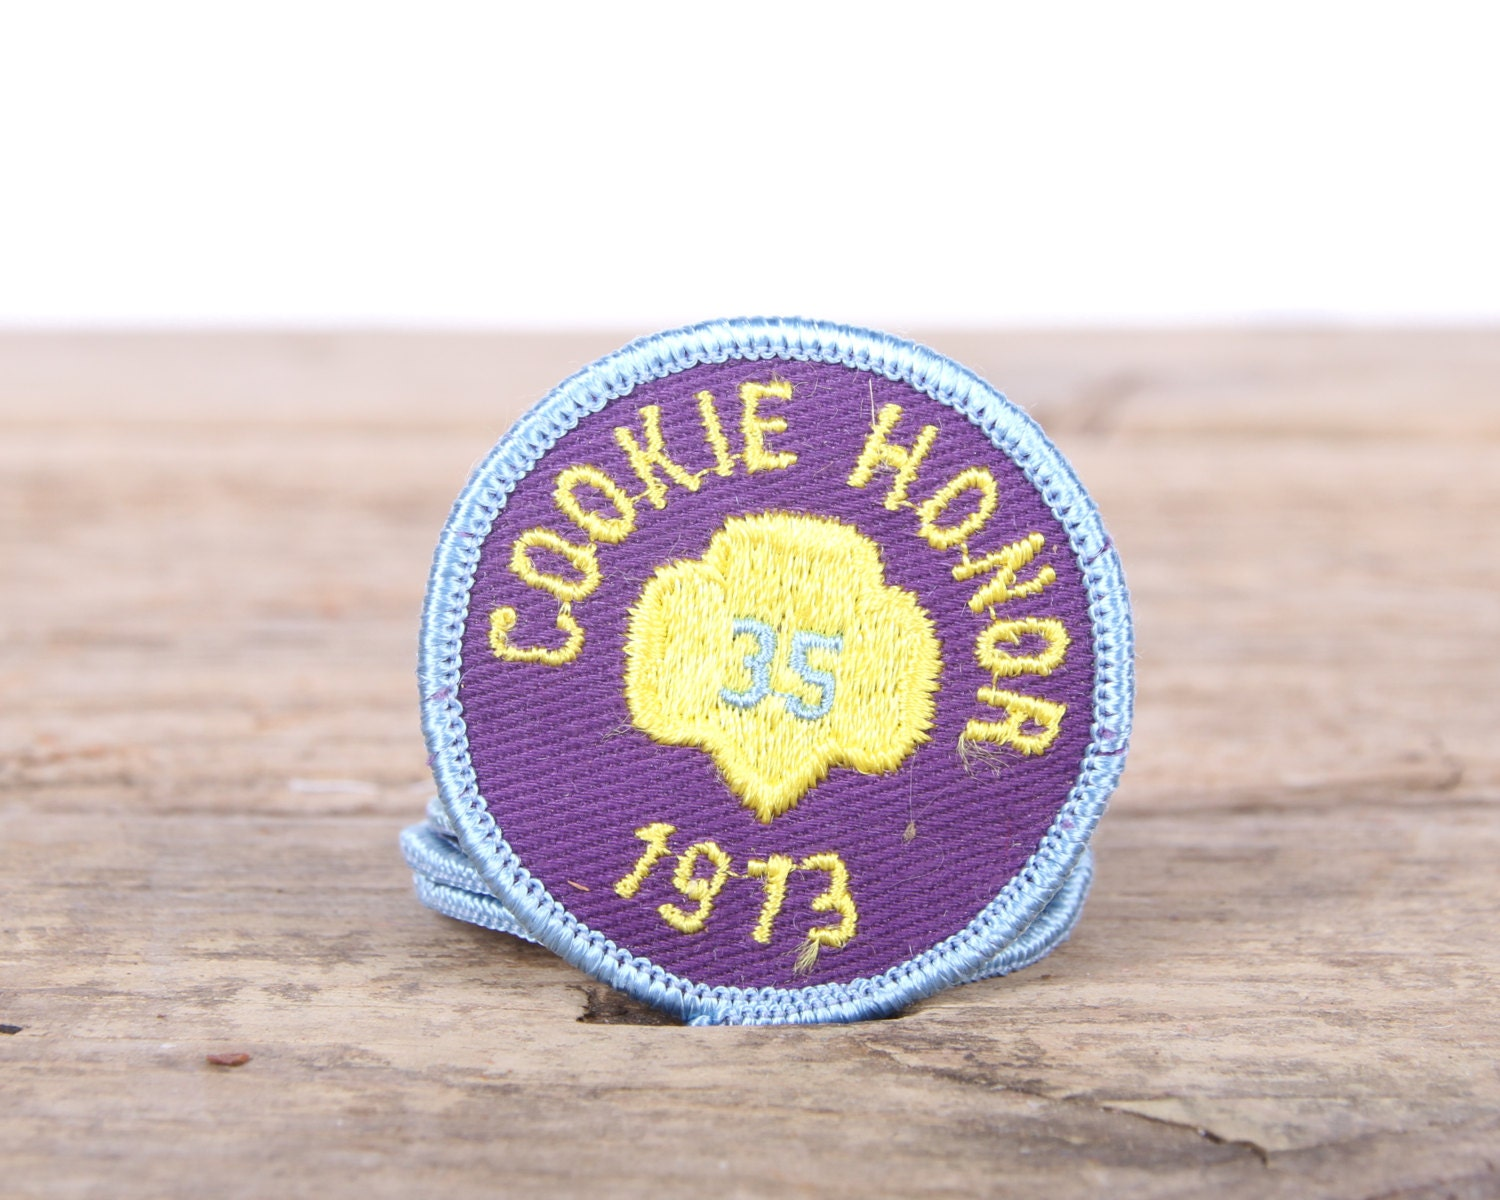 Scout Patch / 1973 Cookie Honor Patch / 2 Girl Scouts Patch